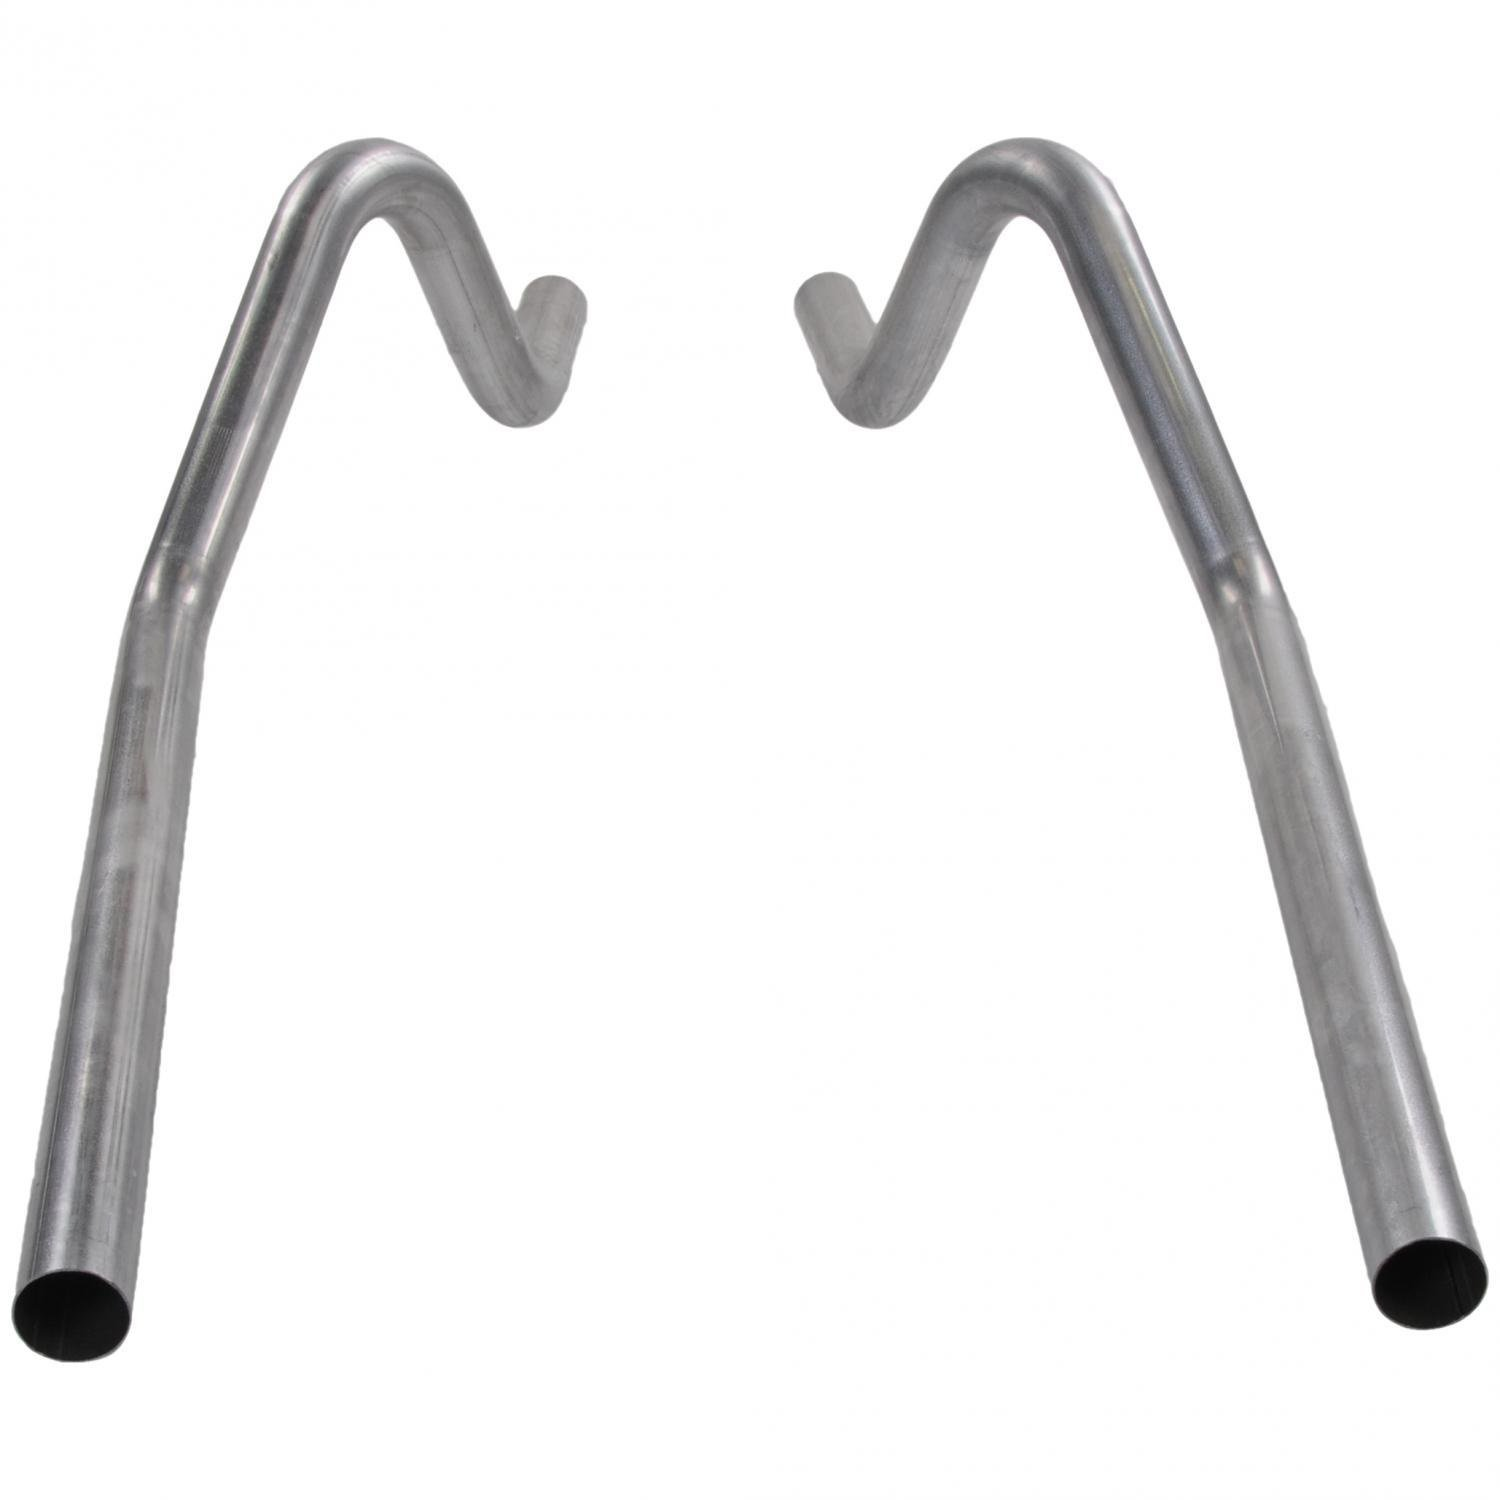 Rear Exit Flowmaster 15807 Prebend Tailpipes 2.50 in Pair